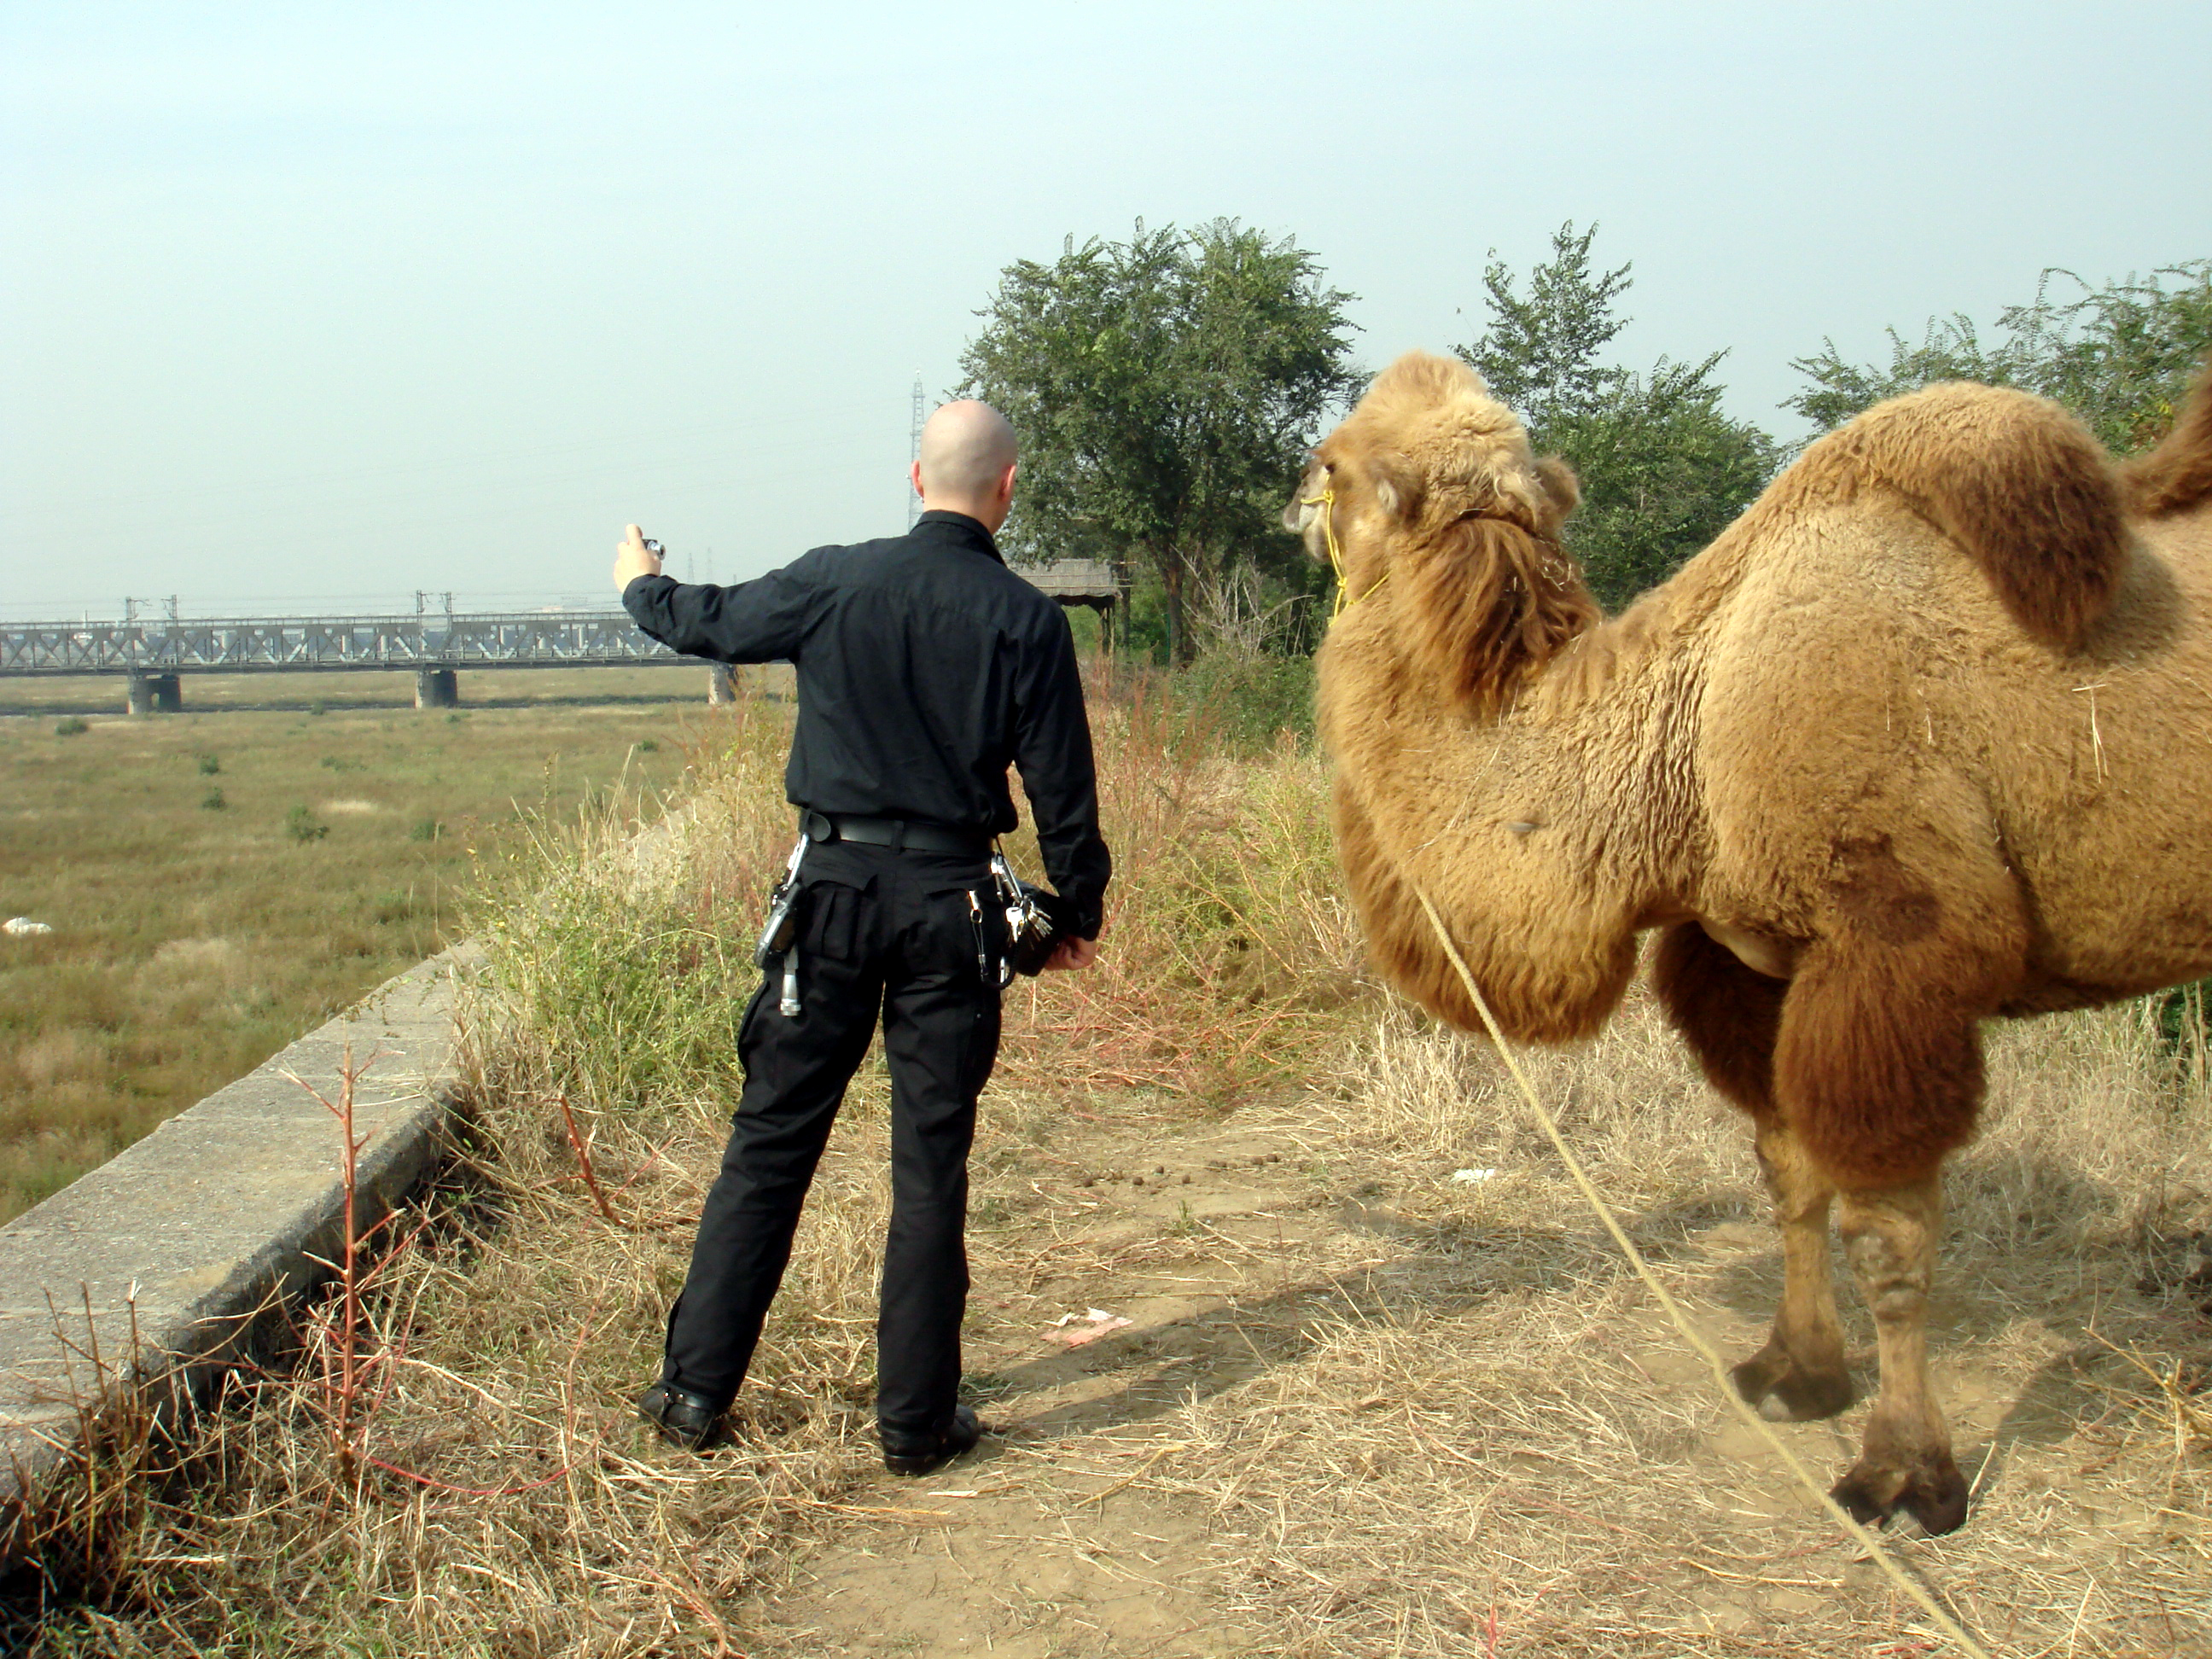 qu_mark_benecke_and_his_friend_the_camel_in_china